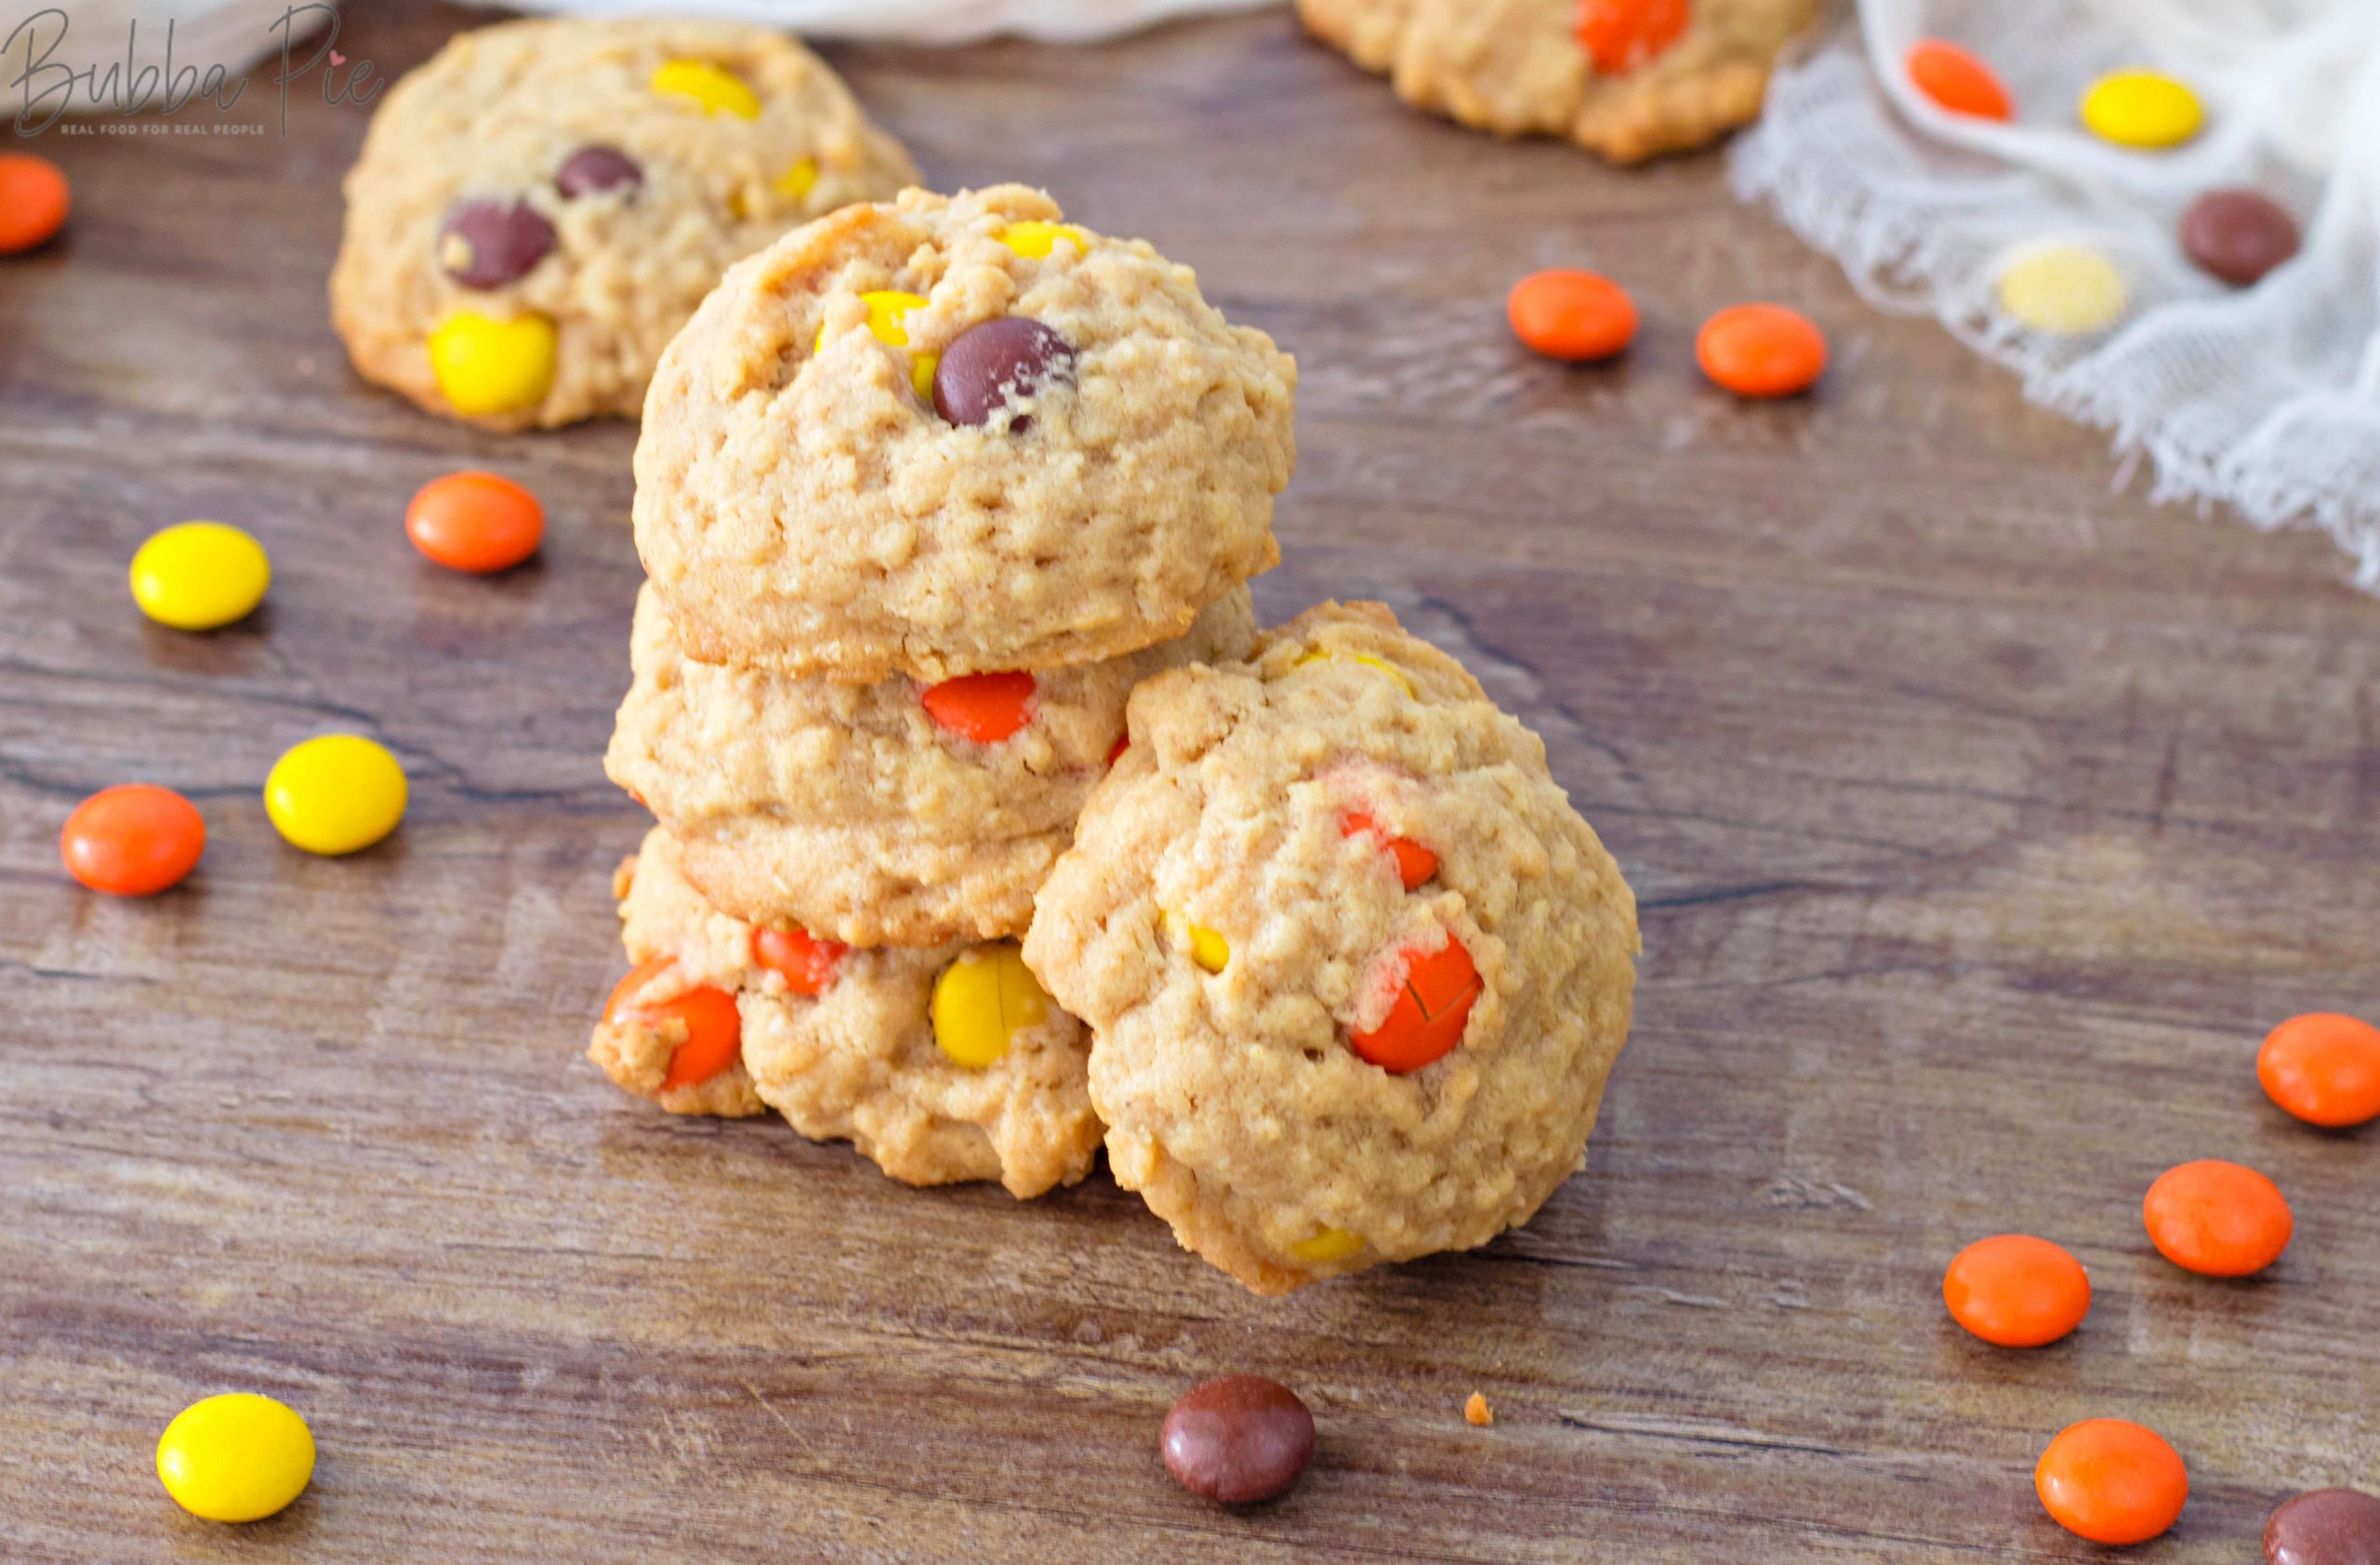 Peanut Butter Oatmeal Cookies with Reese's Pieces